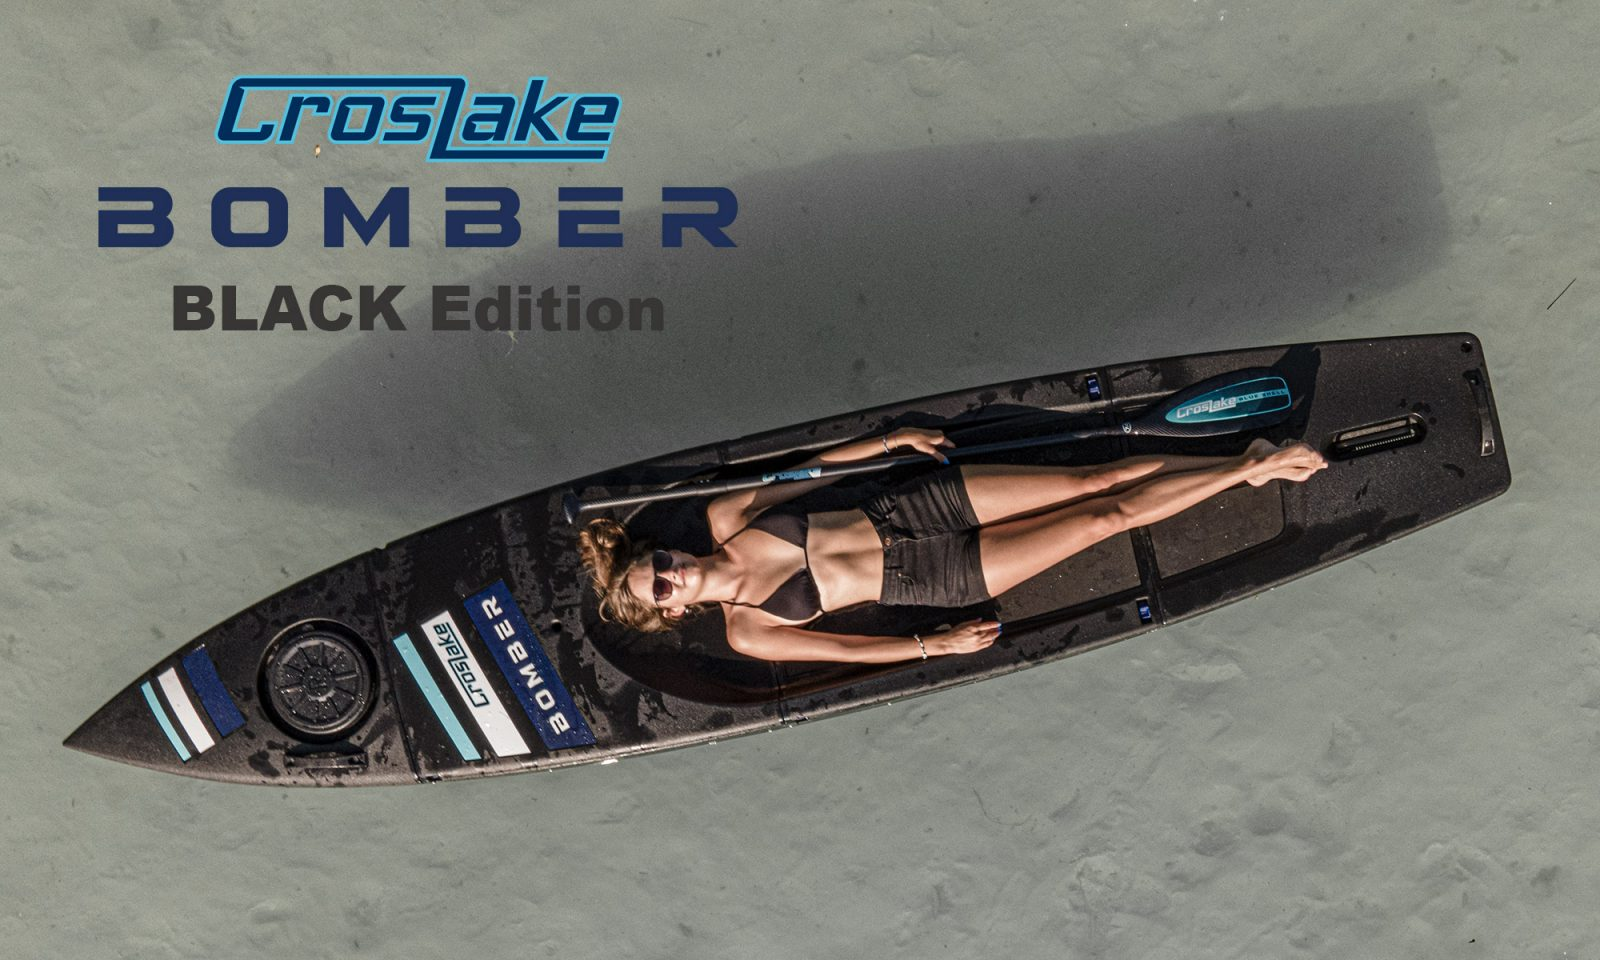 CrosLake-BOMBER-BLACK-Edition-01